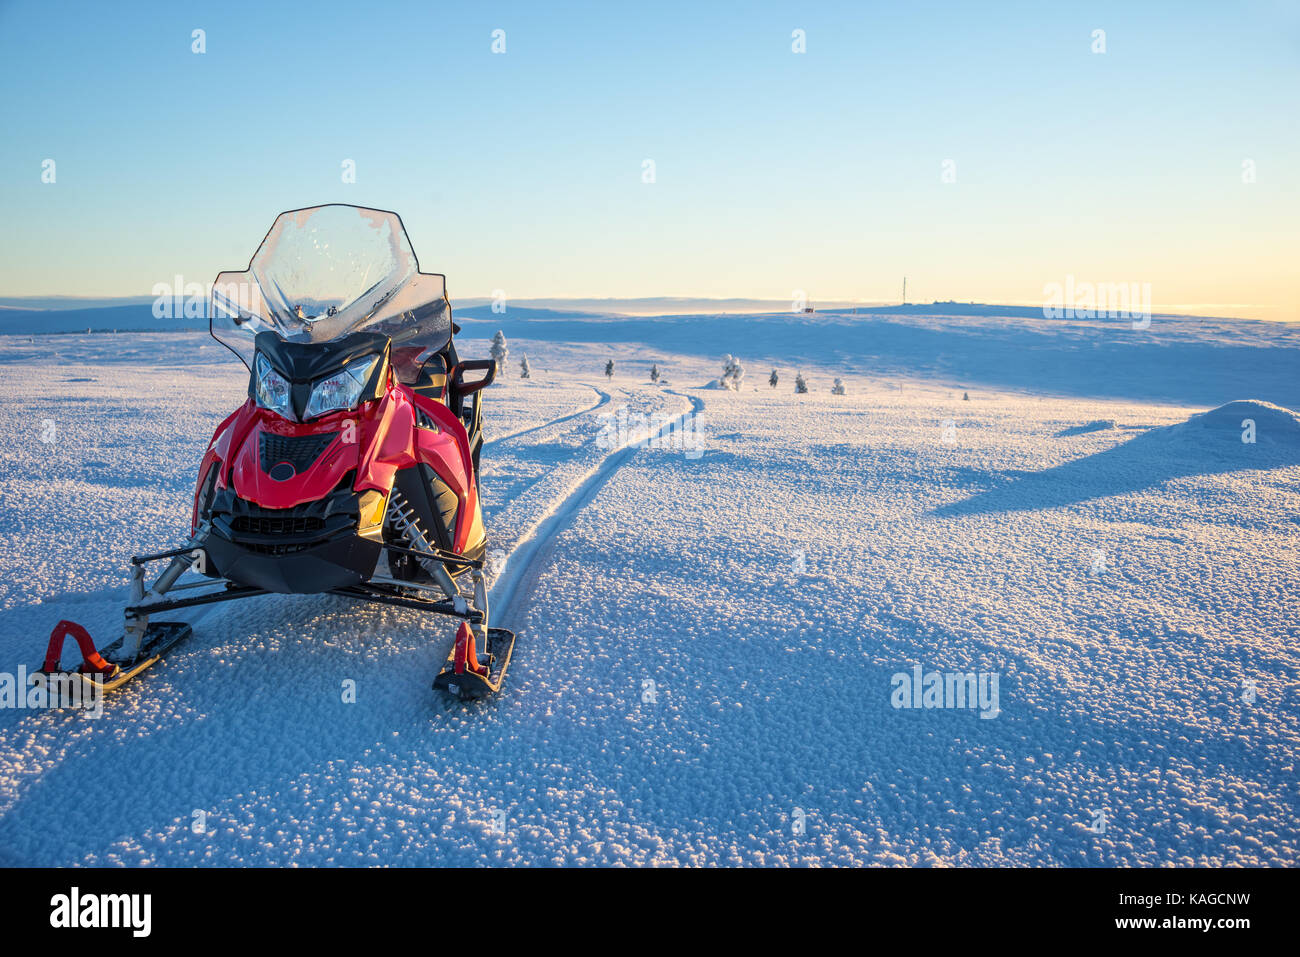 Snowmobile in a snowy landscape in Lapland, near Saariselka, Finland - Stock Image